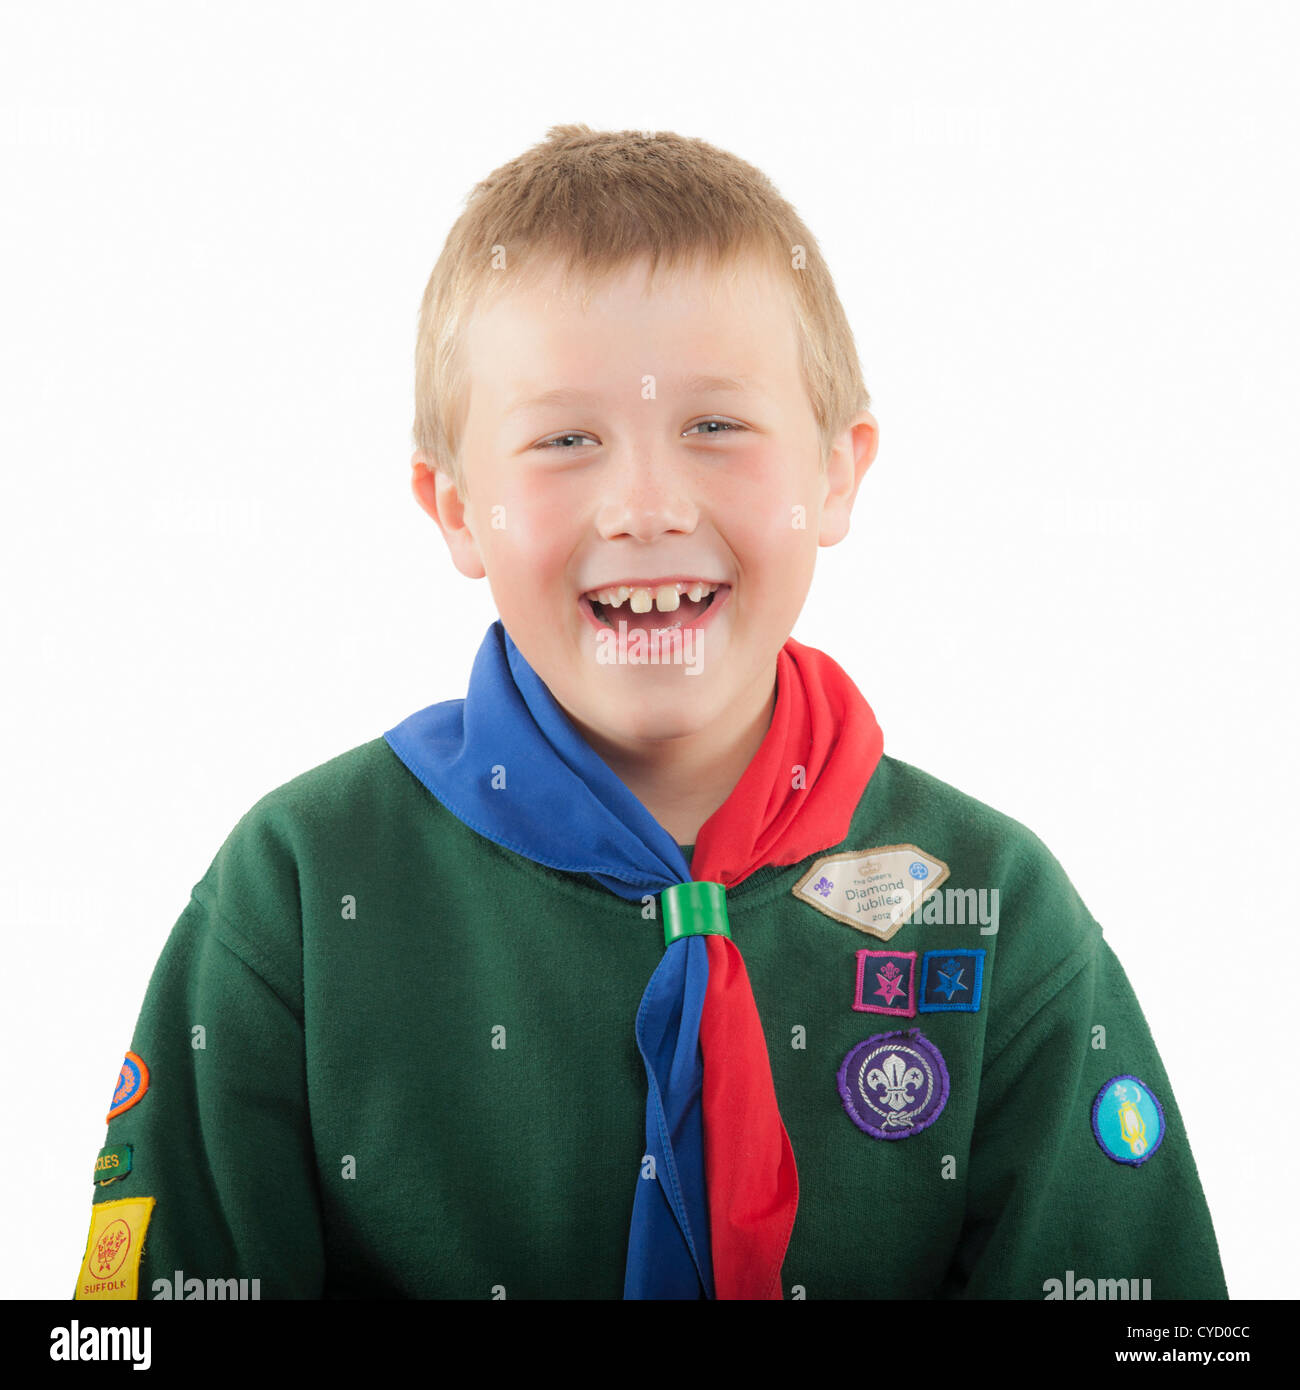 A 9 year old boy in his cub scout uniform in the Uk - Stock Image